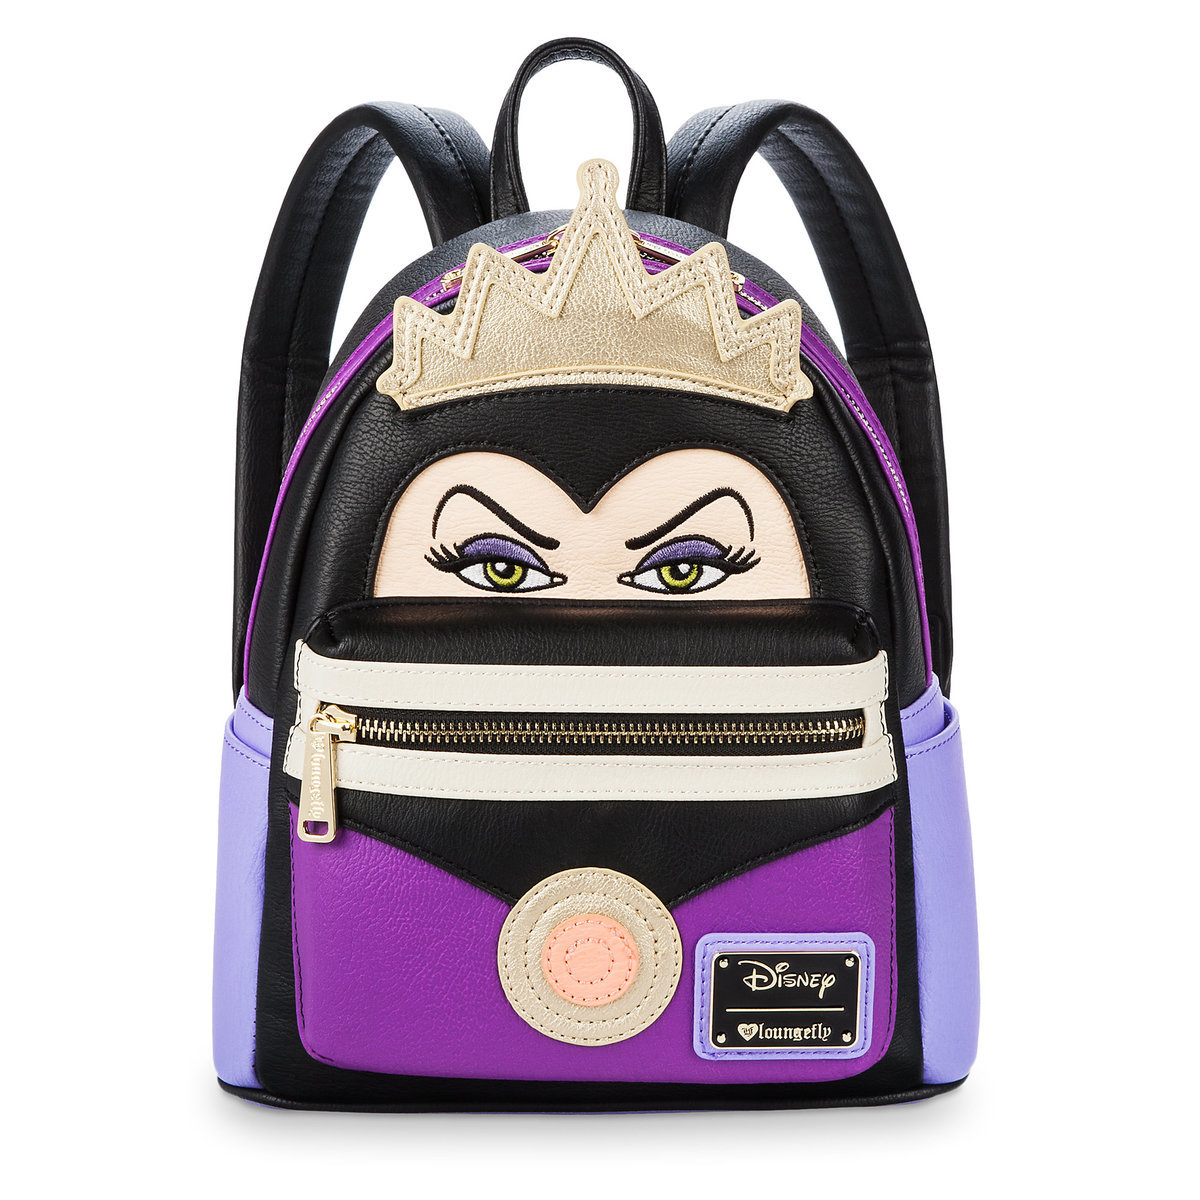 a611bb42f62 Product Image of Evil Queen Mini Backpack by Loungefly   1